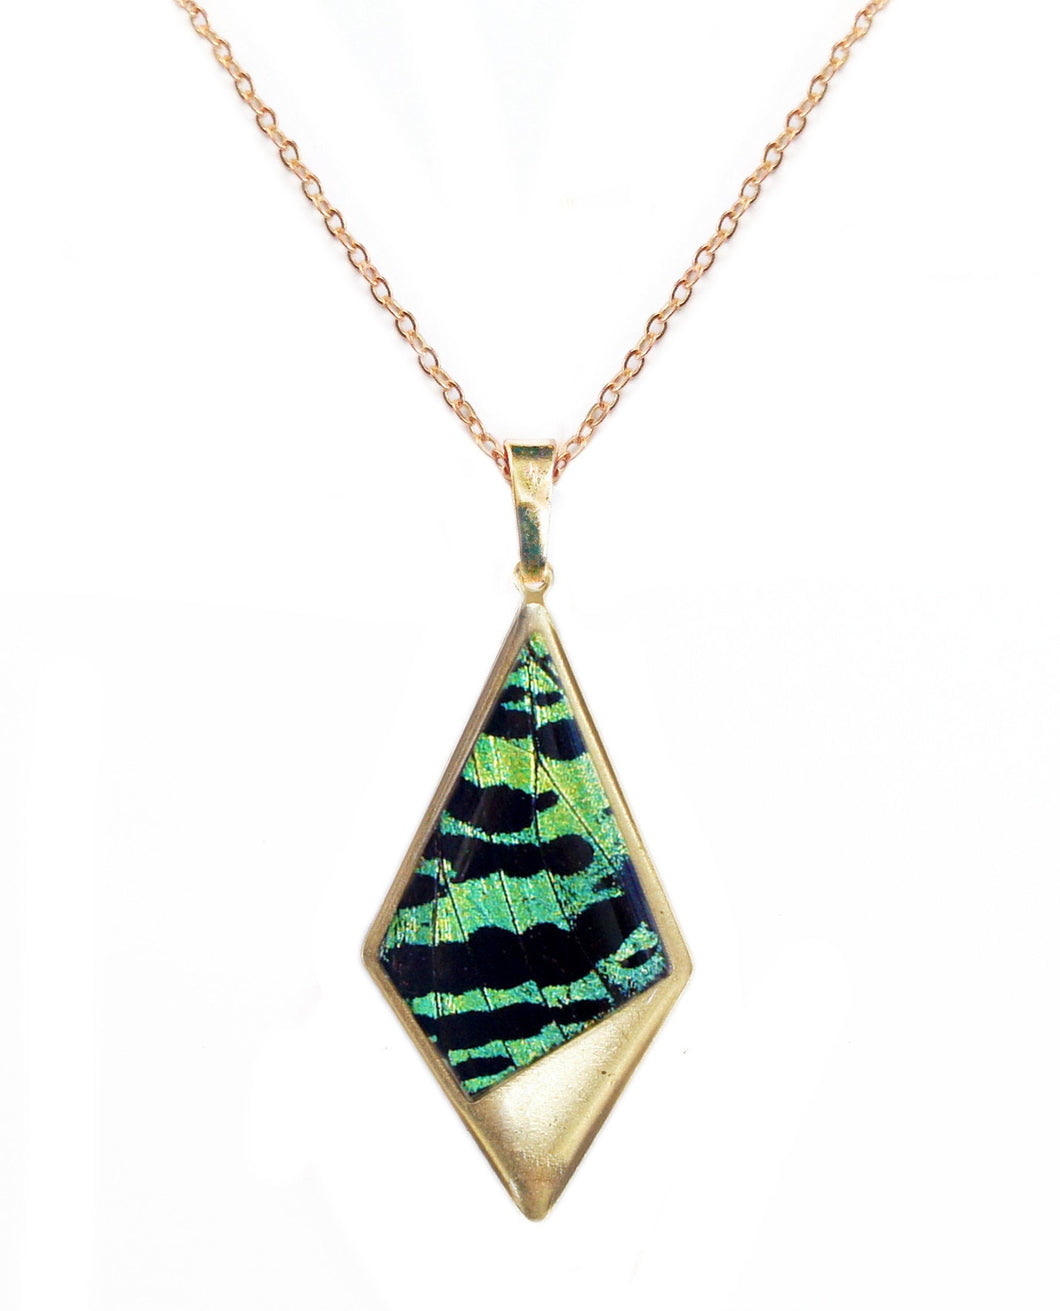 Real Butterfly Wing Kite Pendant Necklace - Green Sunset Moth Forewing